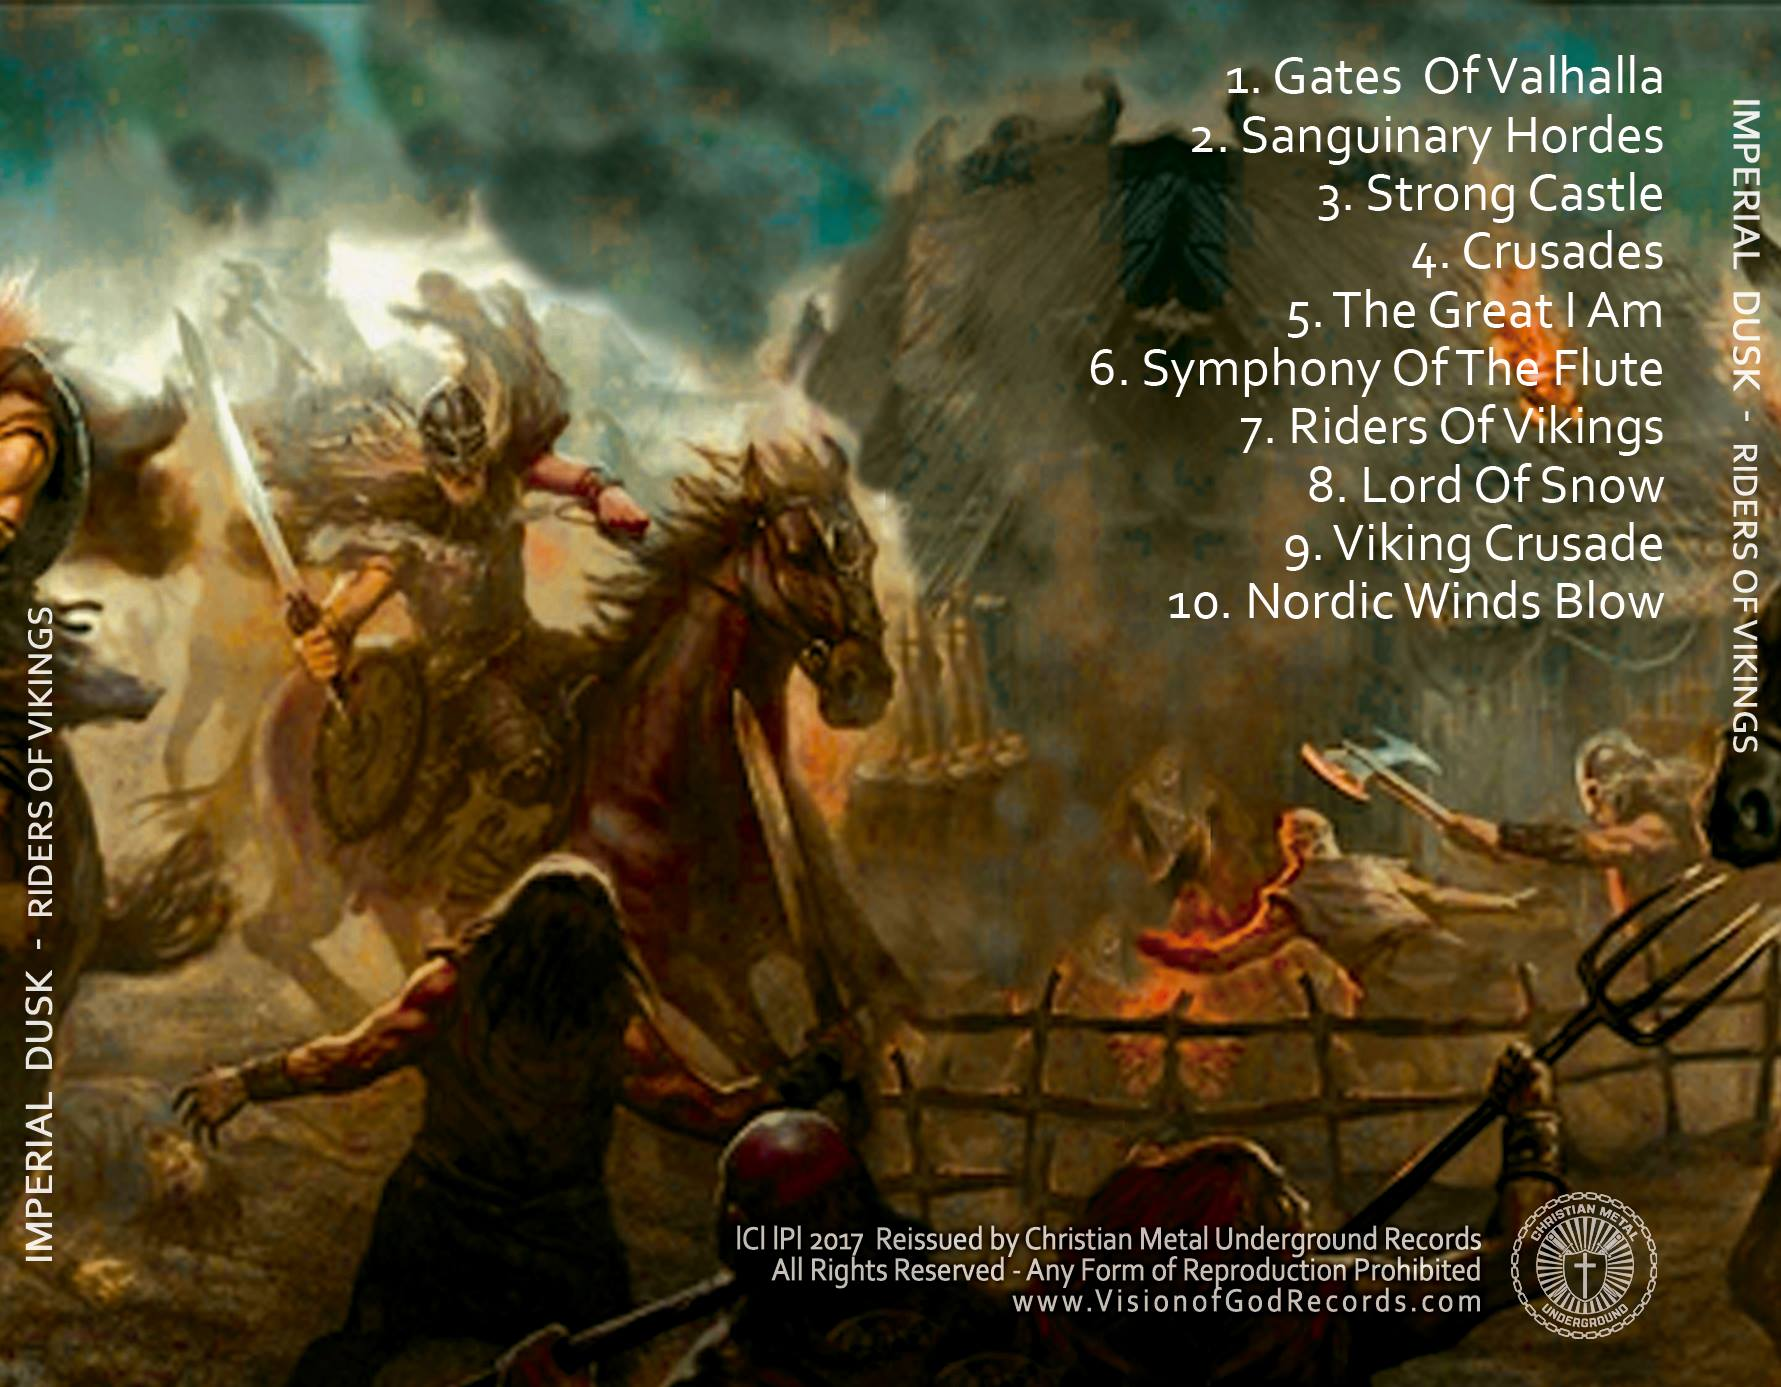 Imperial Dusk Riders Of Vikings Cd Vision Of God Records